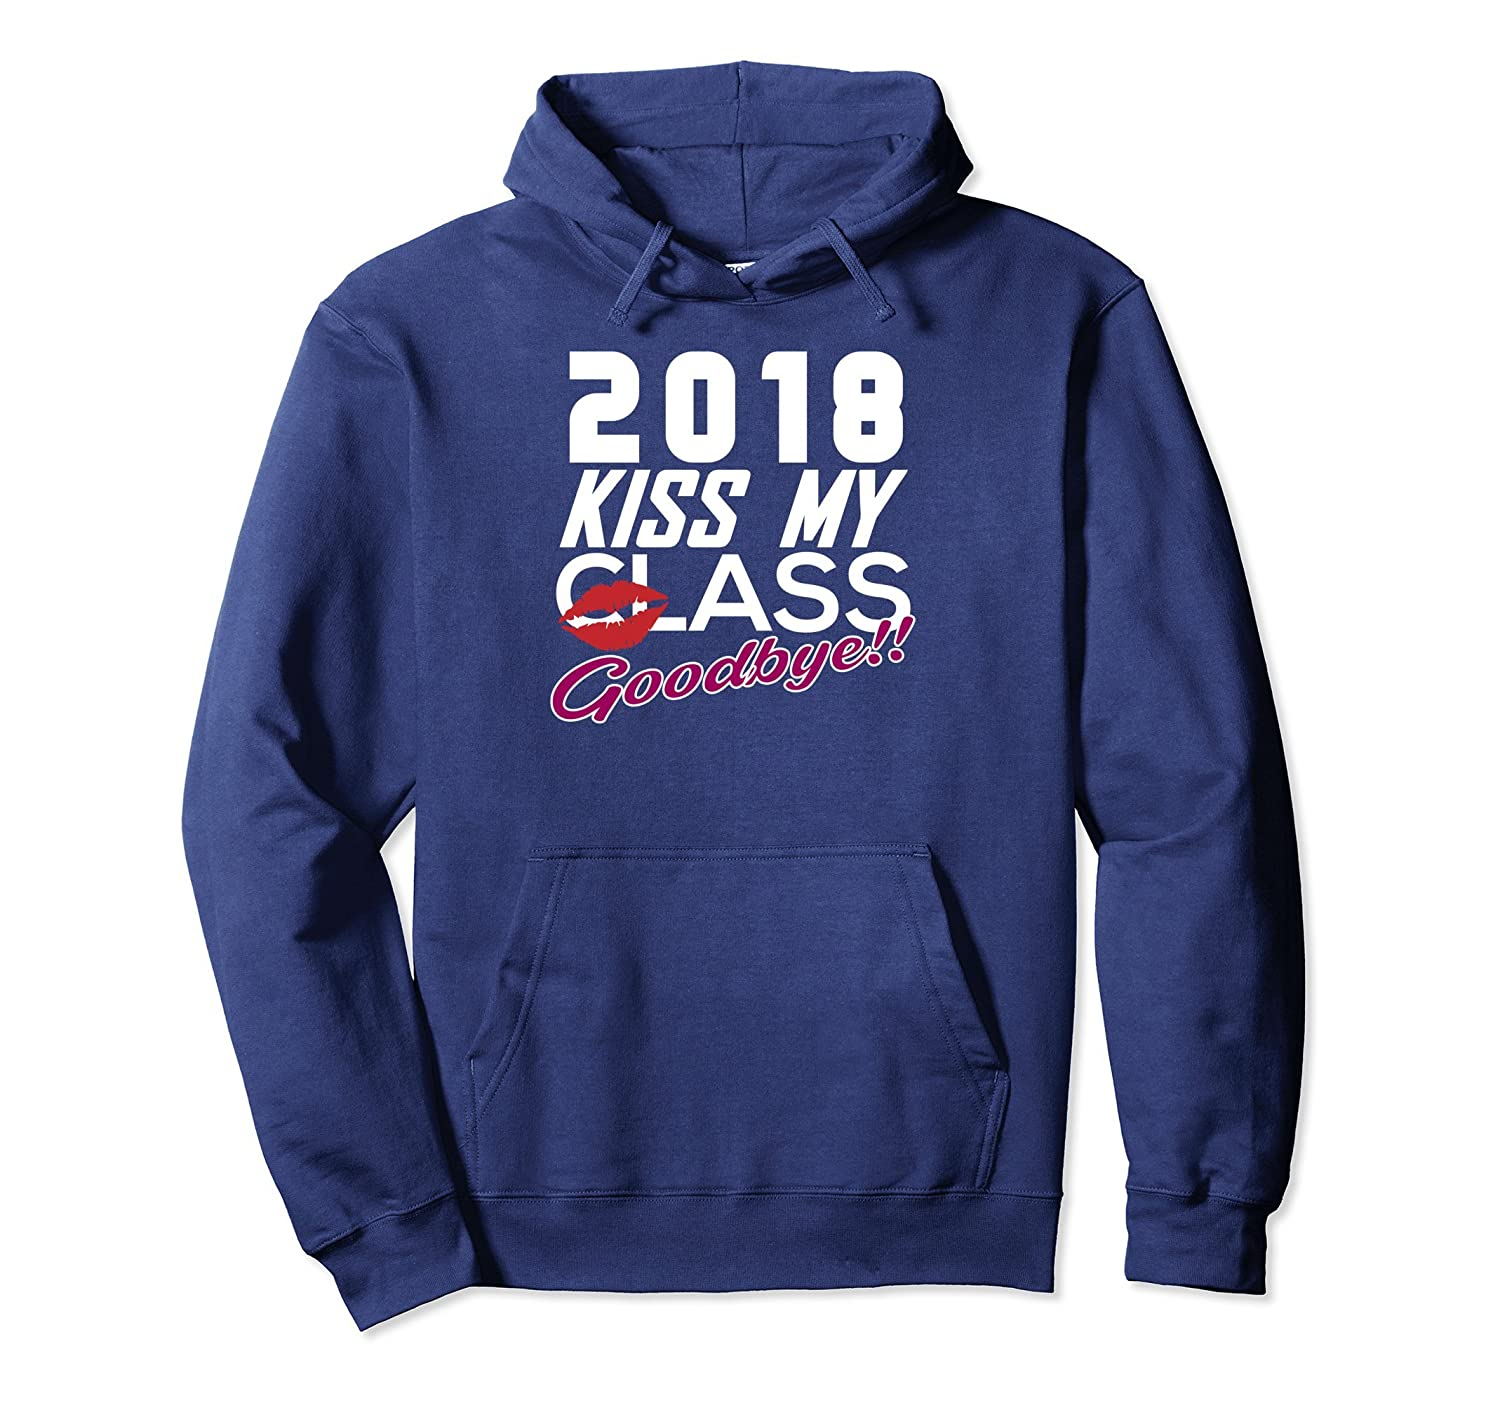 2018 Kiss My Class Ass Goodbye Funny Graduation Hoodie-alottee gift